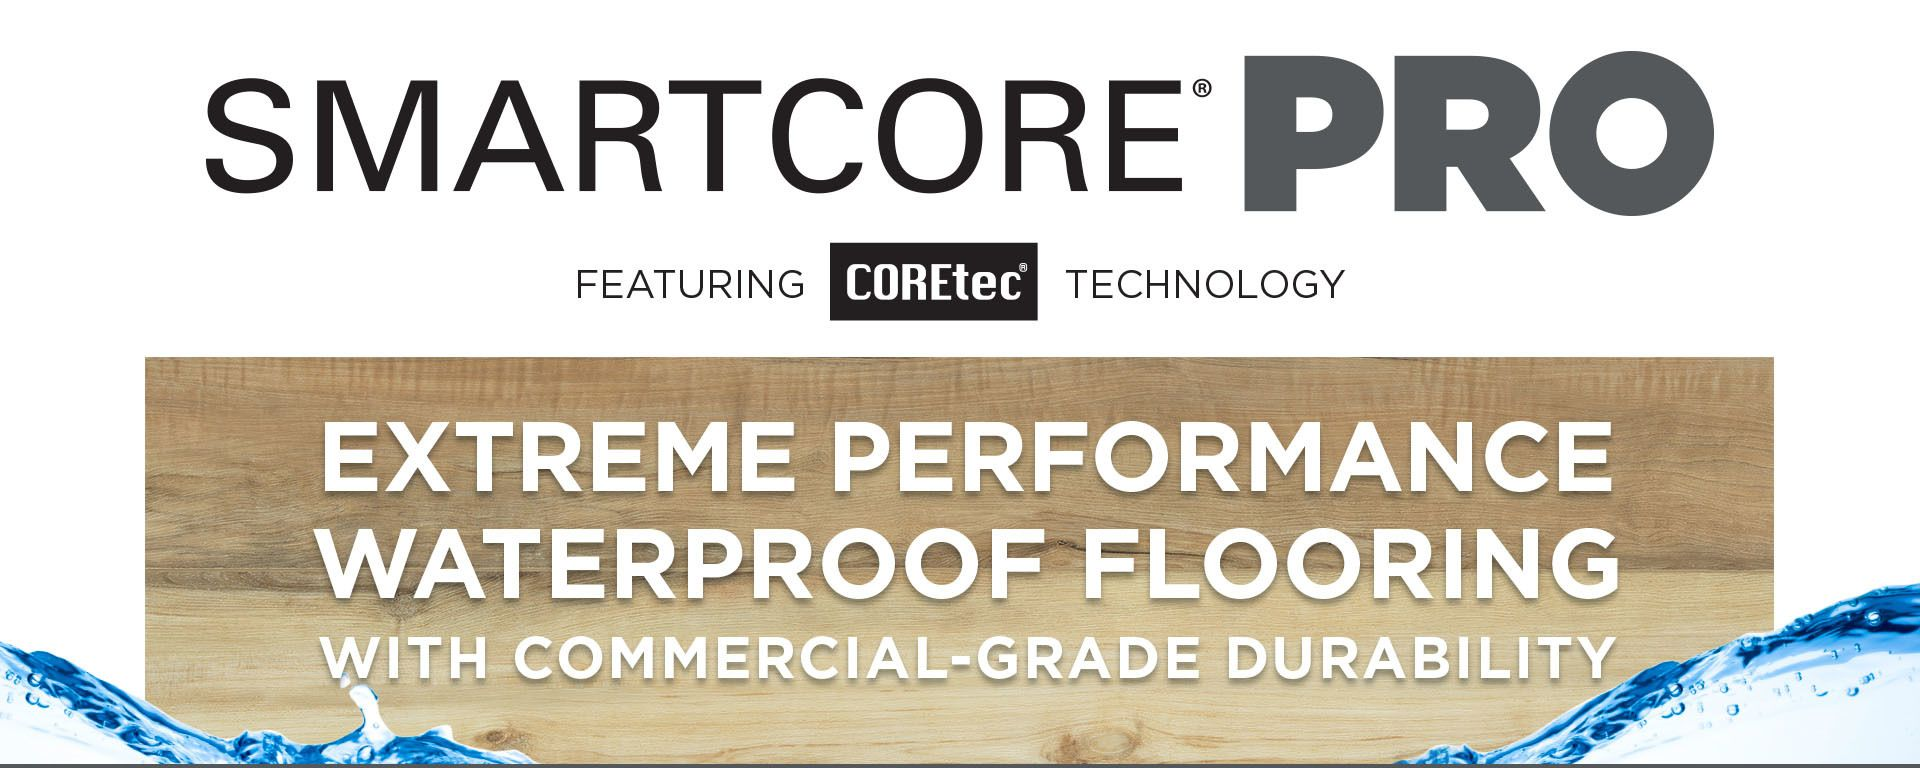 Smartcore Pro Ft Coretec Technology Extreme Performance Waterproof Flooring With Images Vinyl Plank Flooring Vinyl Plank Plank Flooring